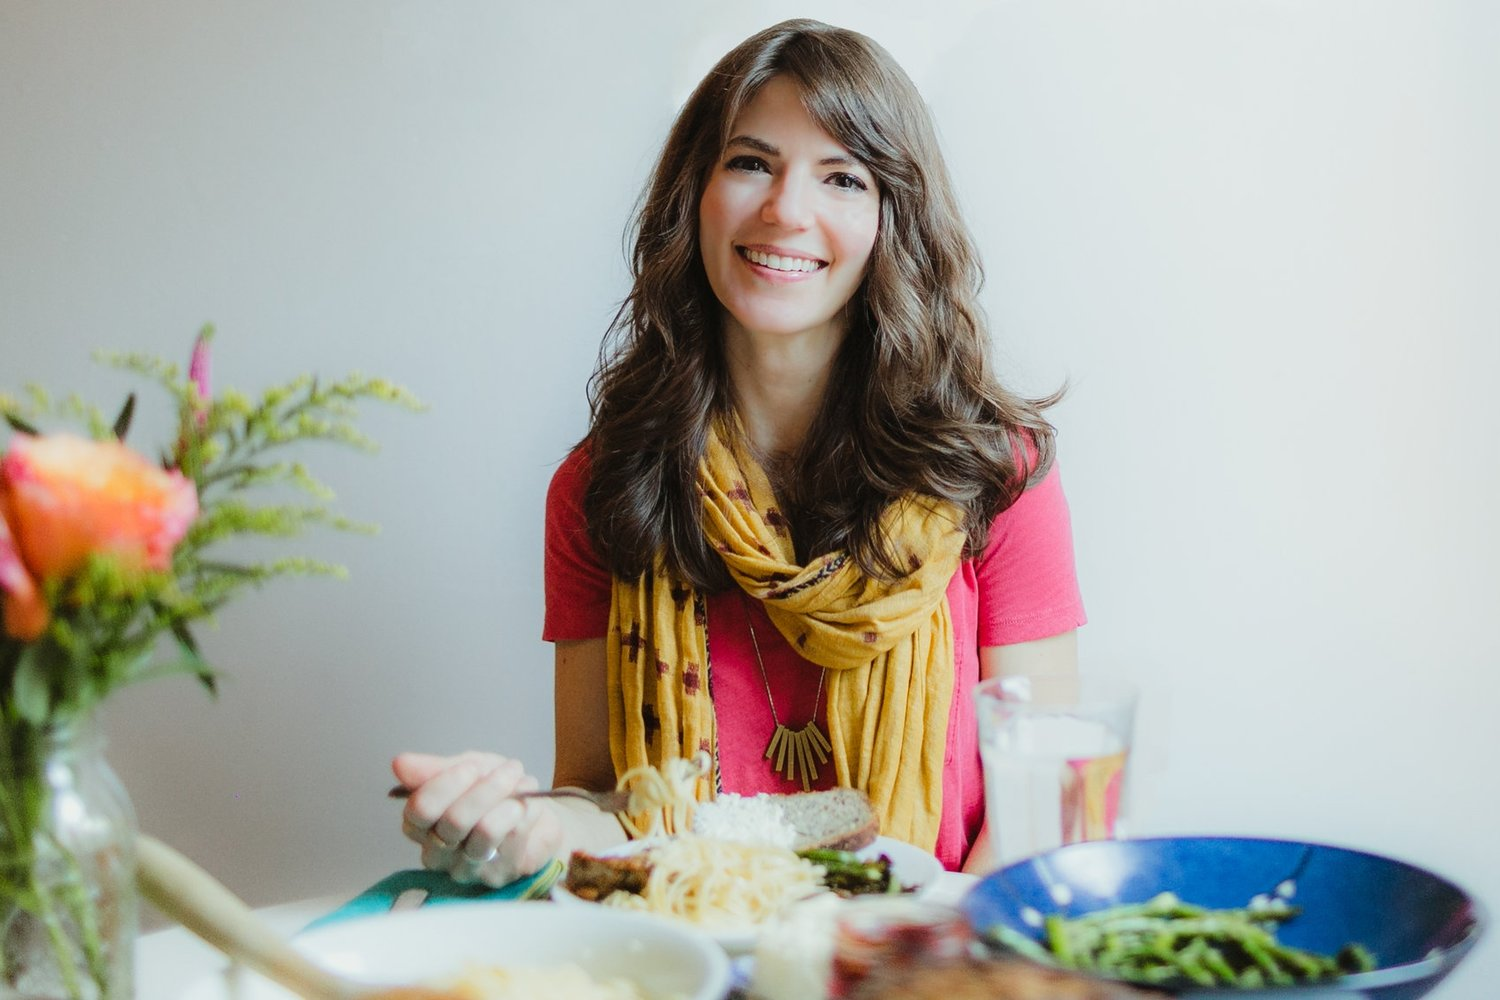 The 'Health Influencer' Lifestyle Can Be a Gateway to Disordered Eating